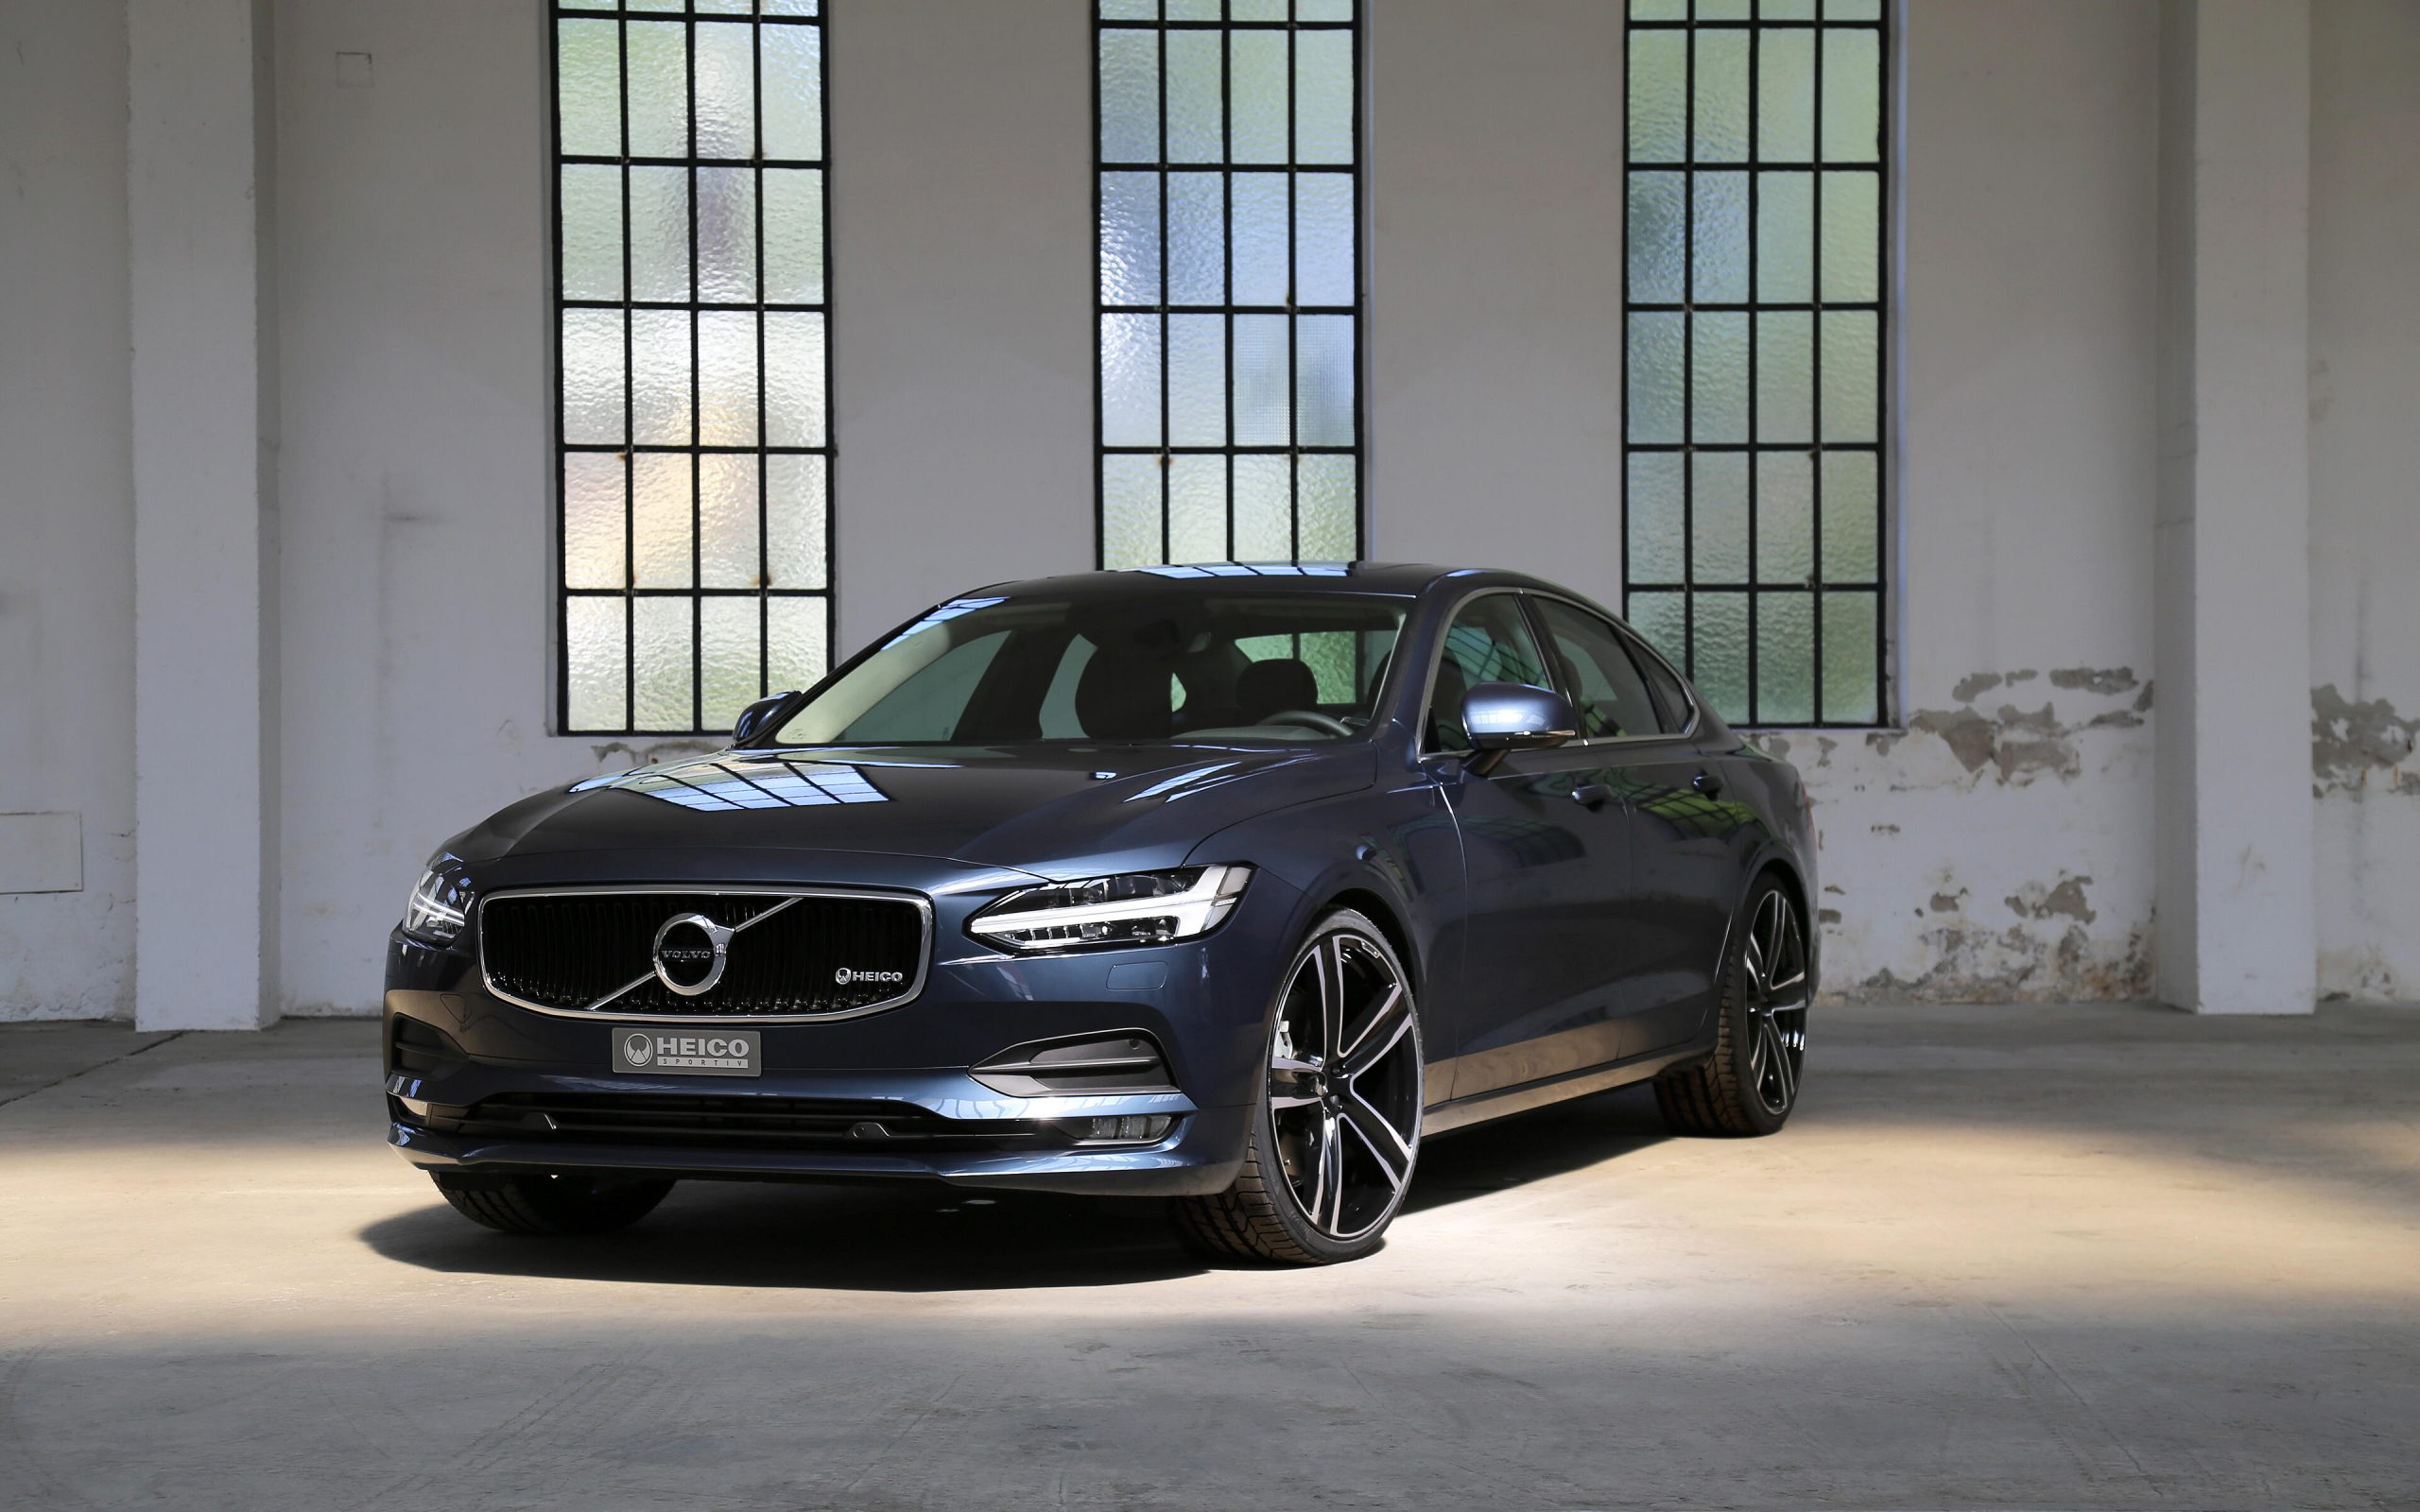 heico-sportiv-volvo-s90-234-classic-depot-front-1